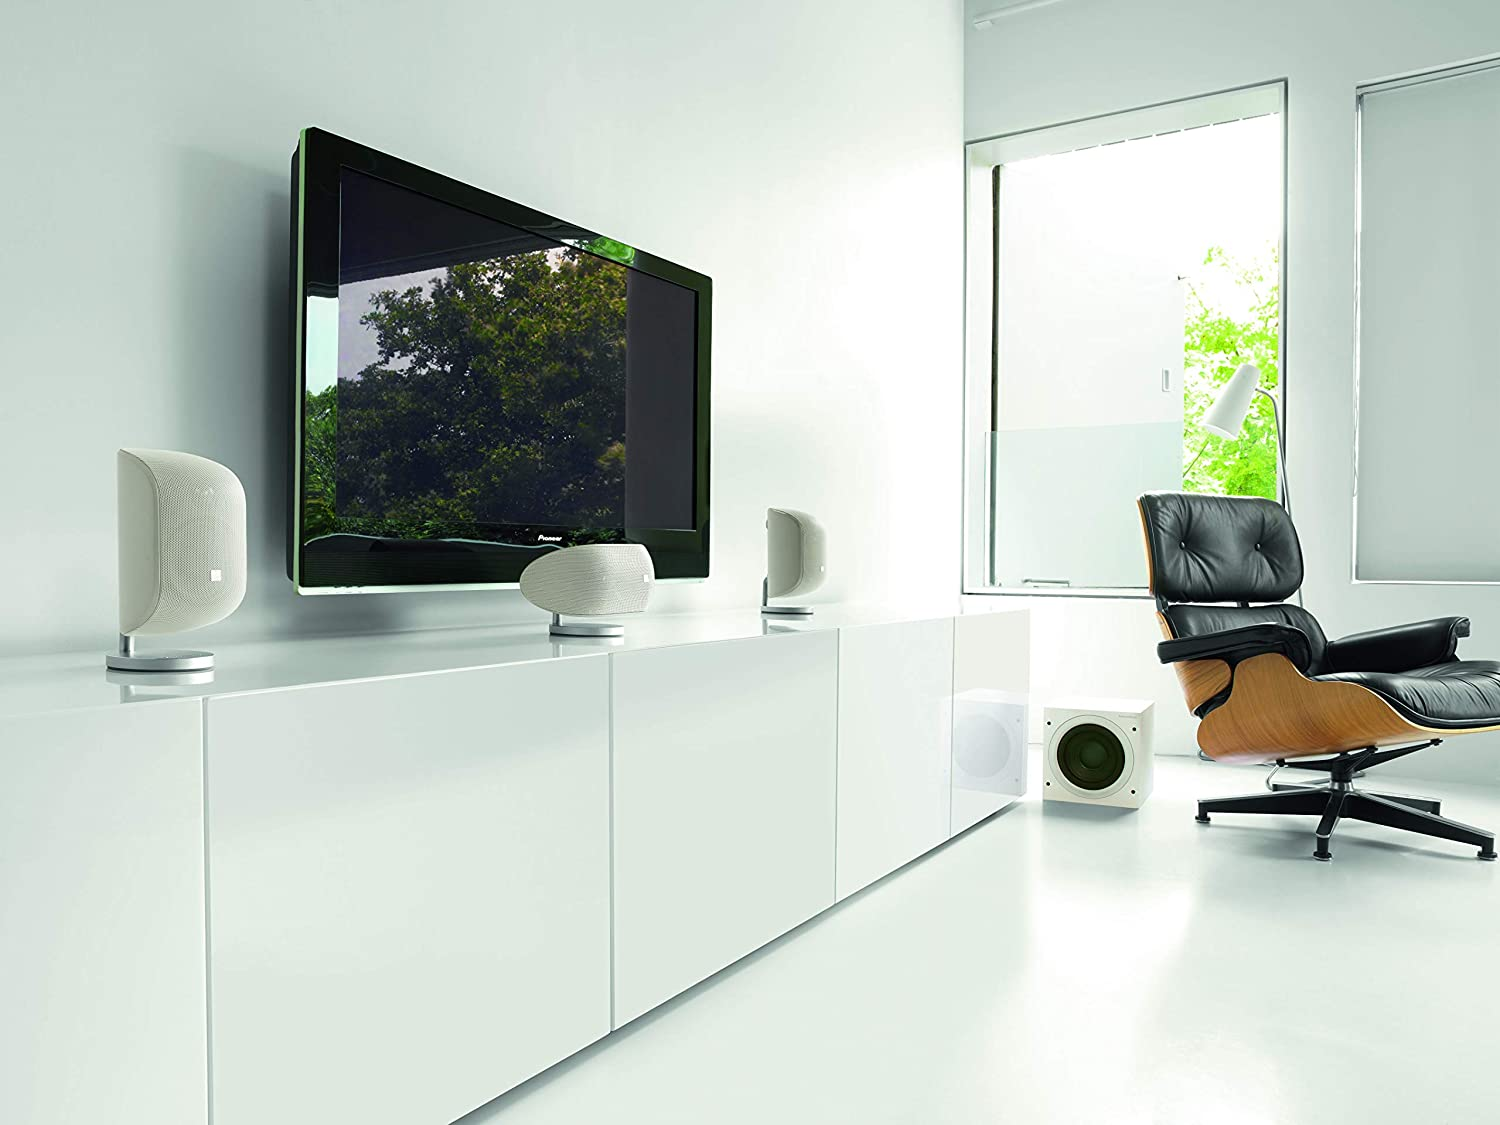 white Bowers & Wilkins ASW608 at the corner of the room